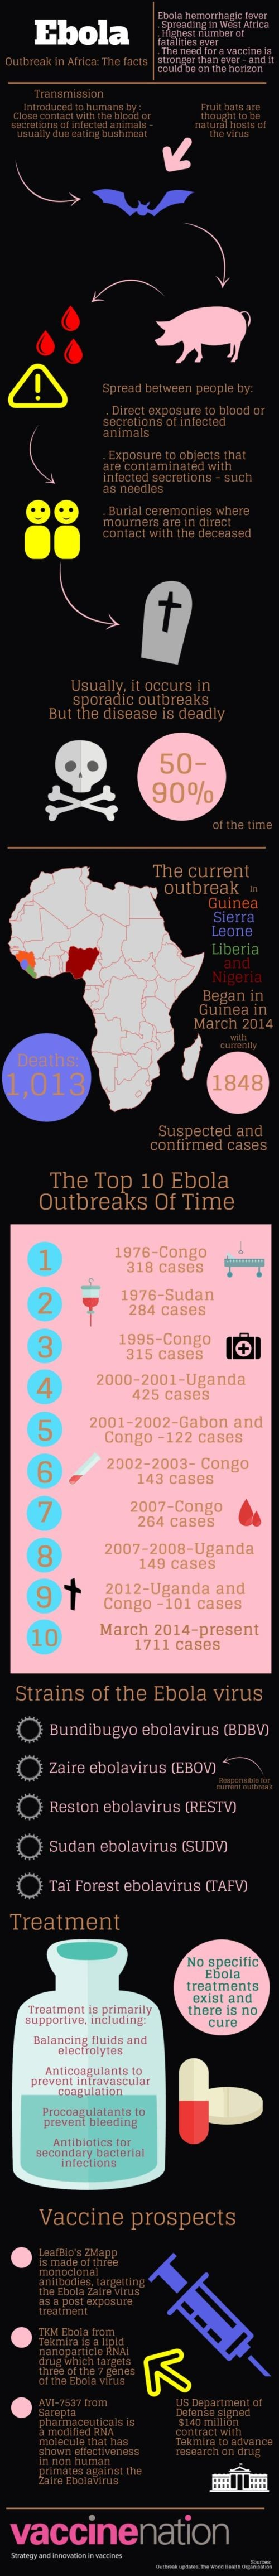 ebola-up-to-date-3-1